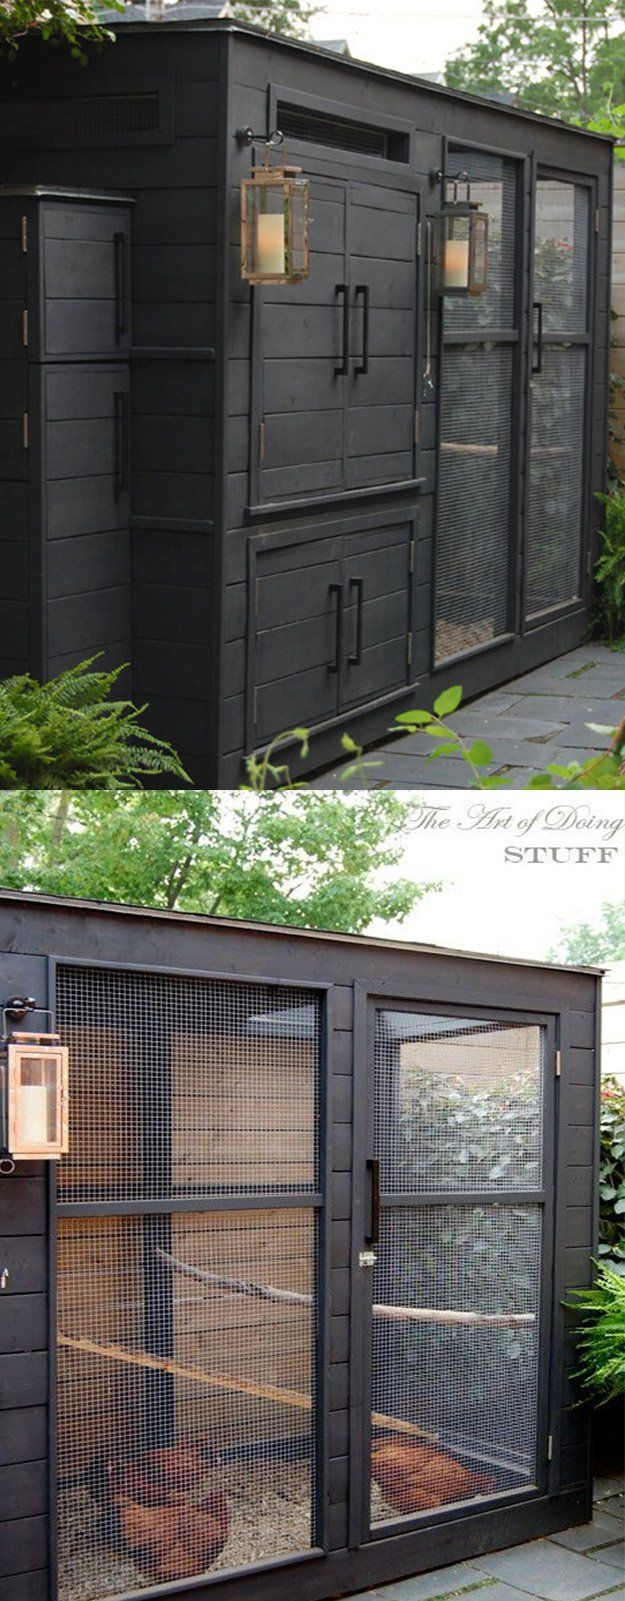 Chicken Coop Design Ideas some of our readers have been telling us that most free chicken coop plans are confusing because theyre incomplete no material list no step by step guide 25 Best Chicken Coop Designs Ideas On Pinterest Chicken Coops Diy Chicken Coop And Yard And Coop